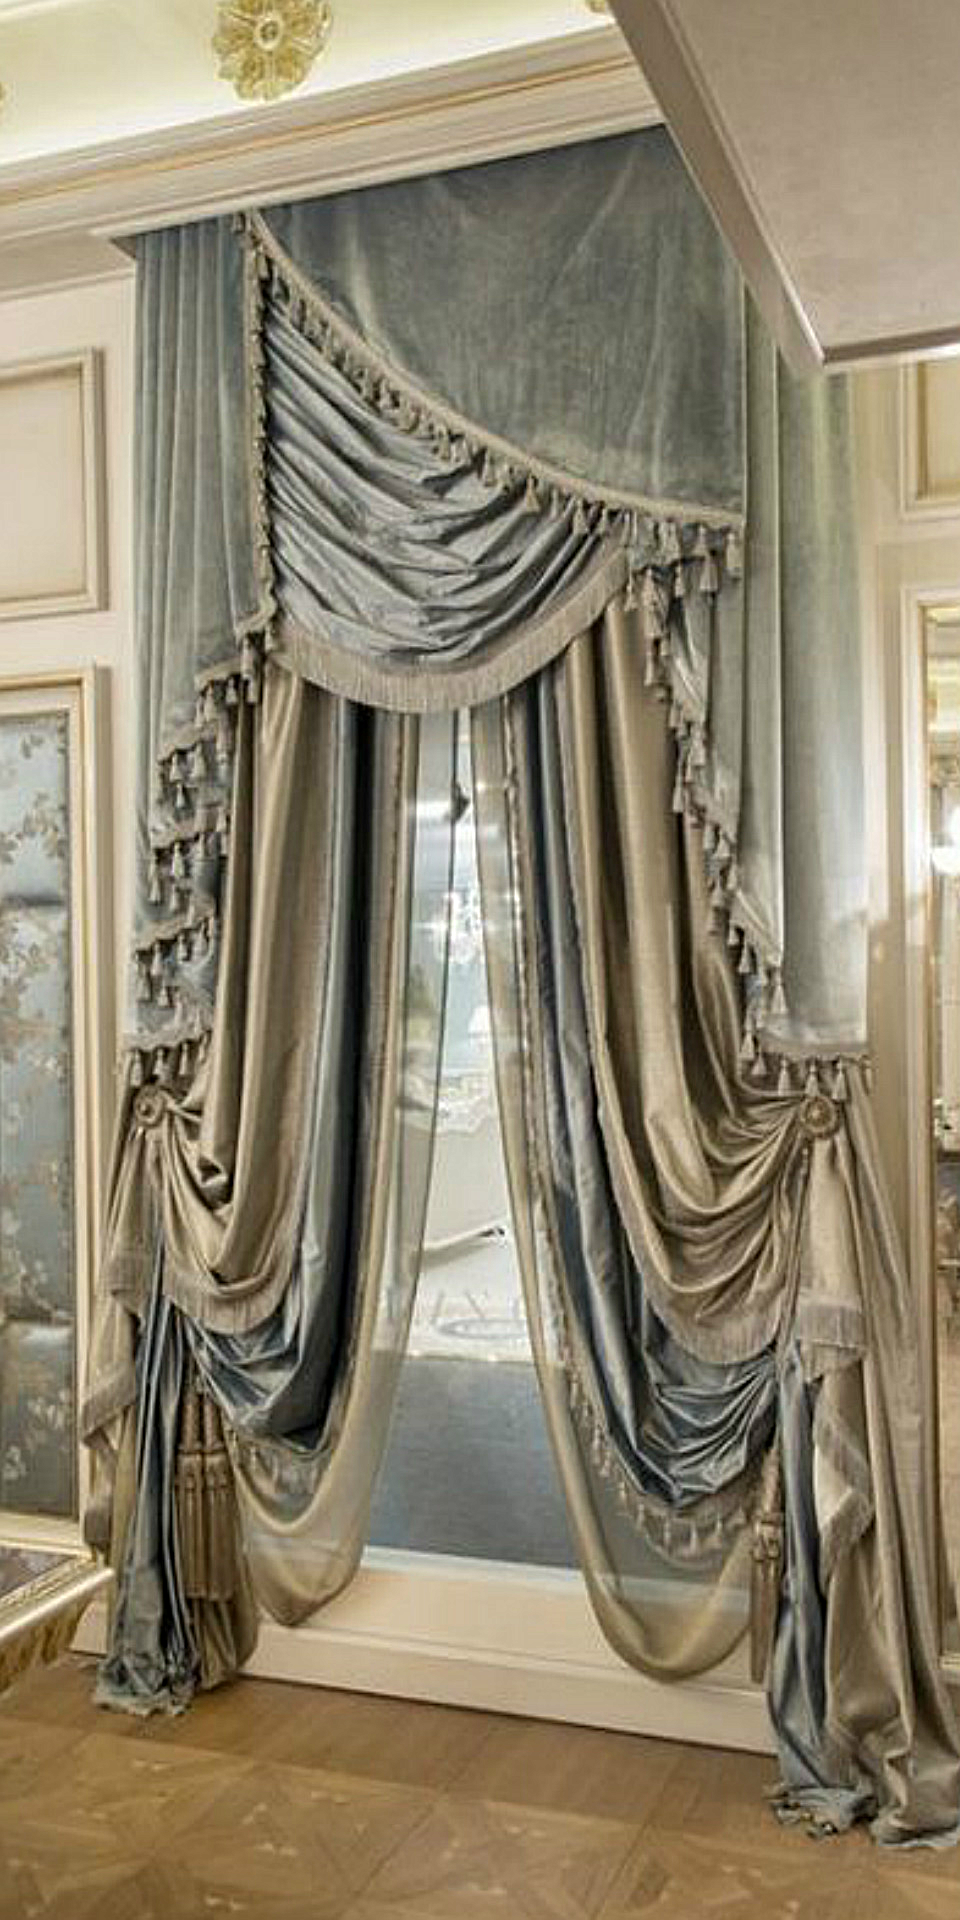 This Is Quite Something For An Window Treatment Addict